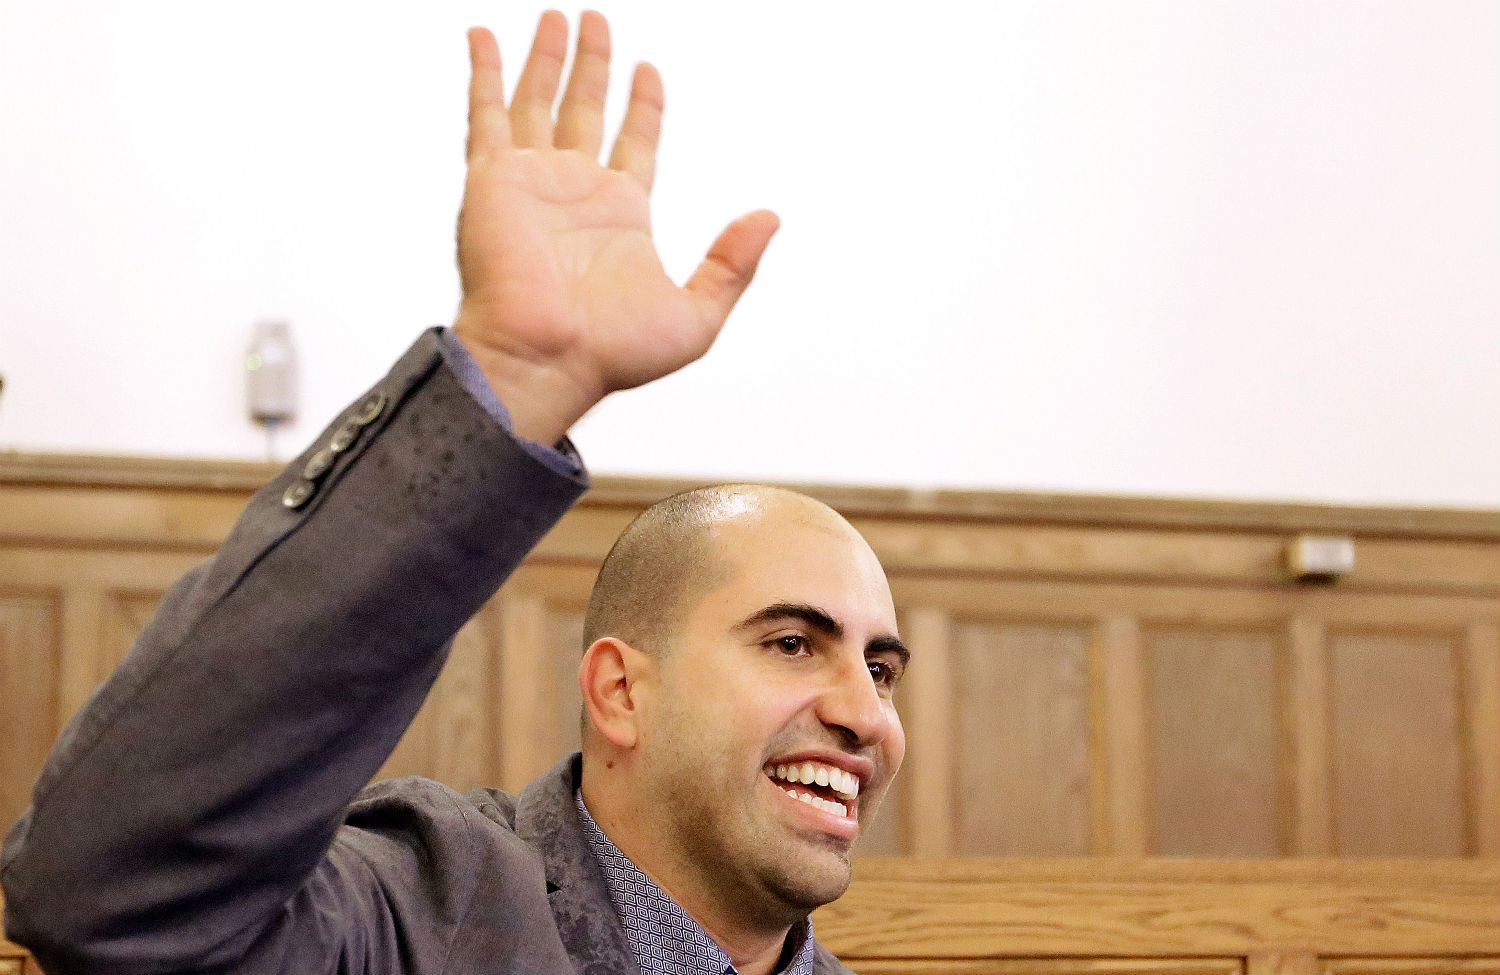 Steve-Salaita-a-professor-who-lost-his-job-offer-at-University-of-Illinois-at-Urbana-Champaign-speaks-at-a-press-conference.-AP-PhotoSeth-Perlman